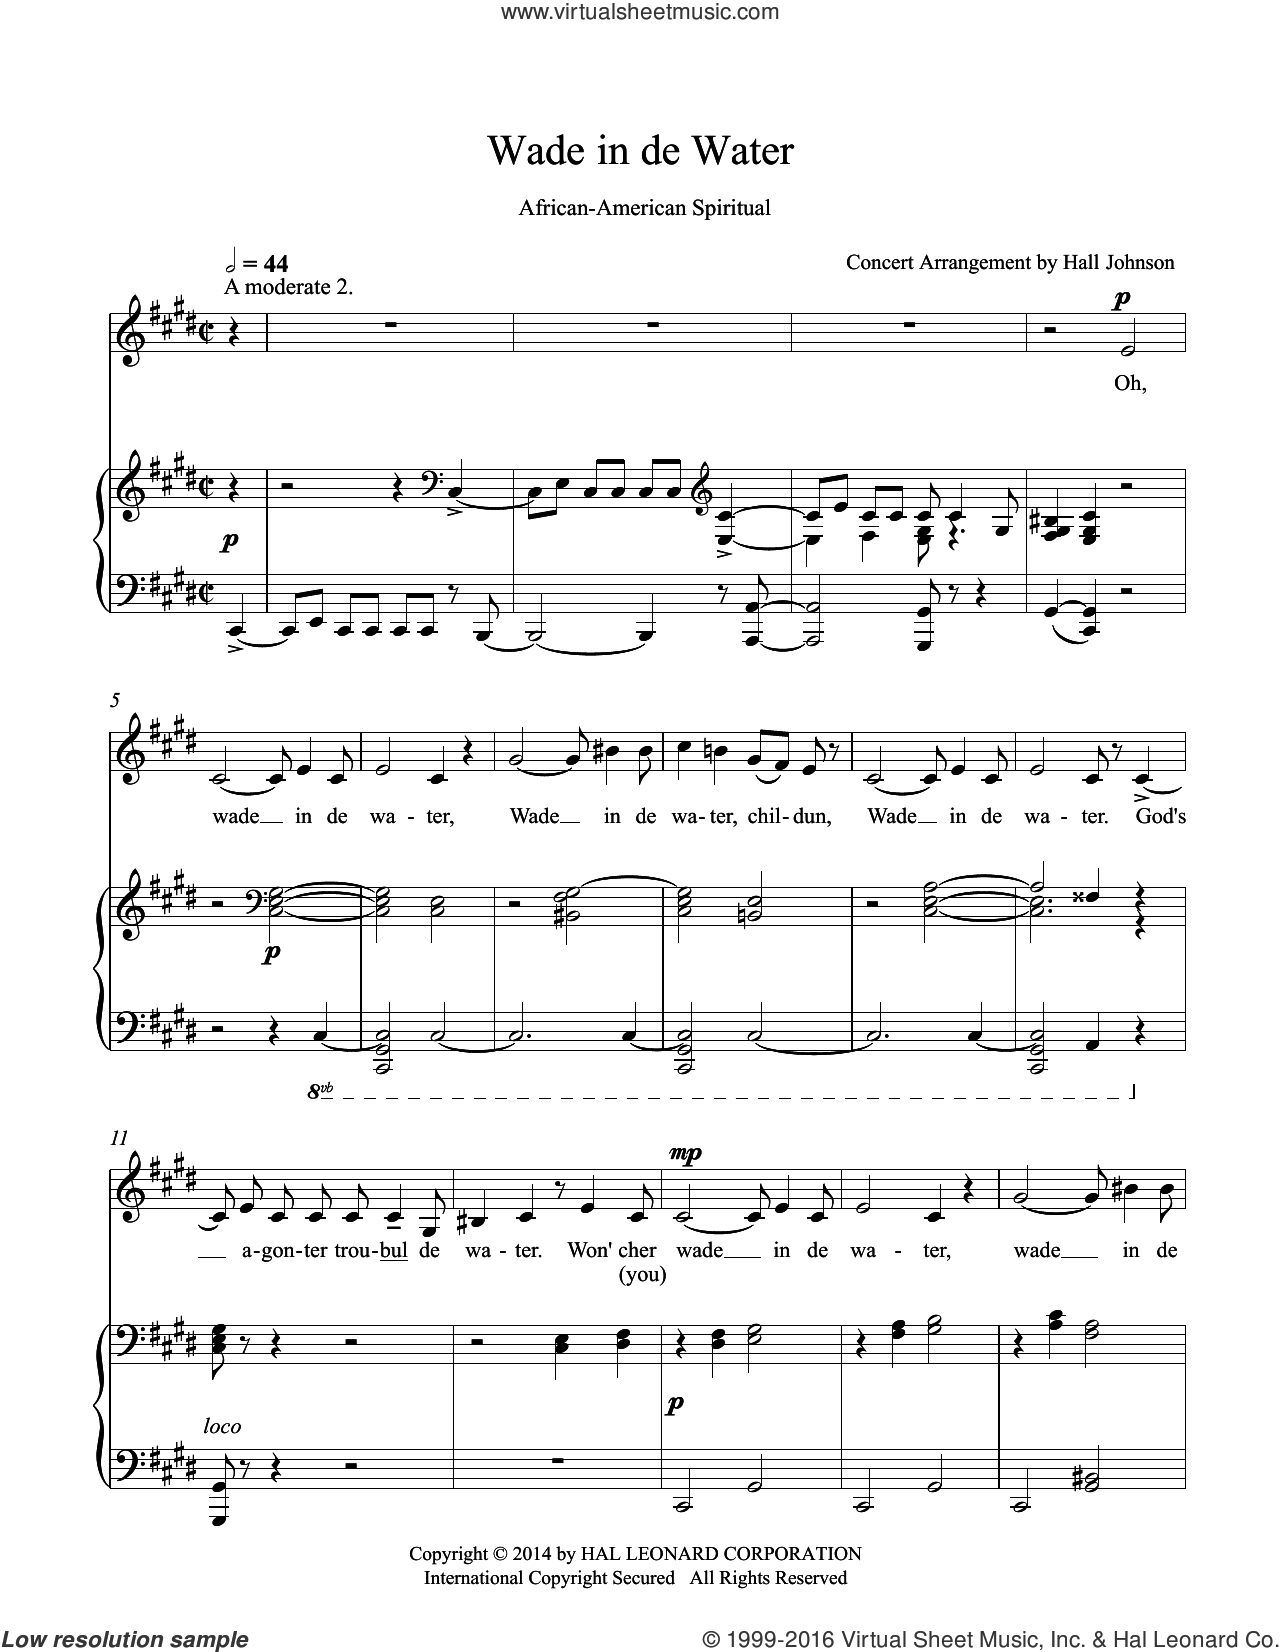 Wade in de Water (C-sharp minor) sheet music for voice and piano by Hall Johnson, classical score, intermediate skill level